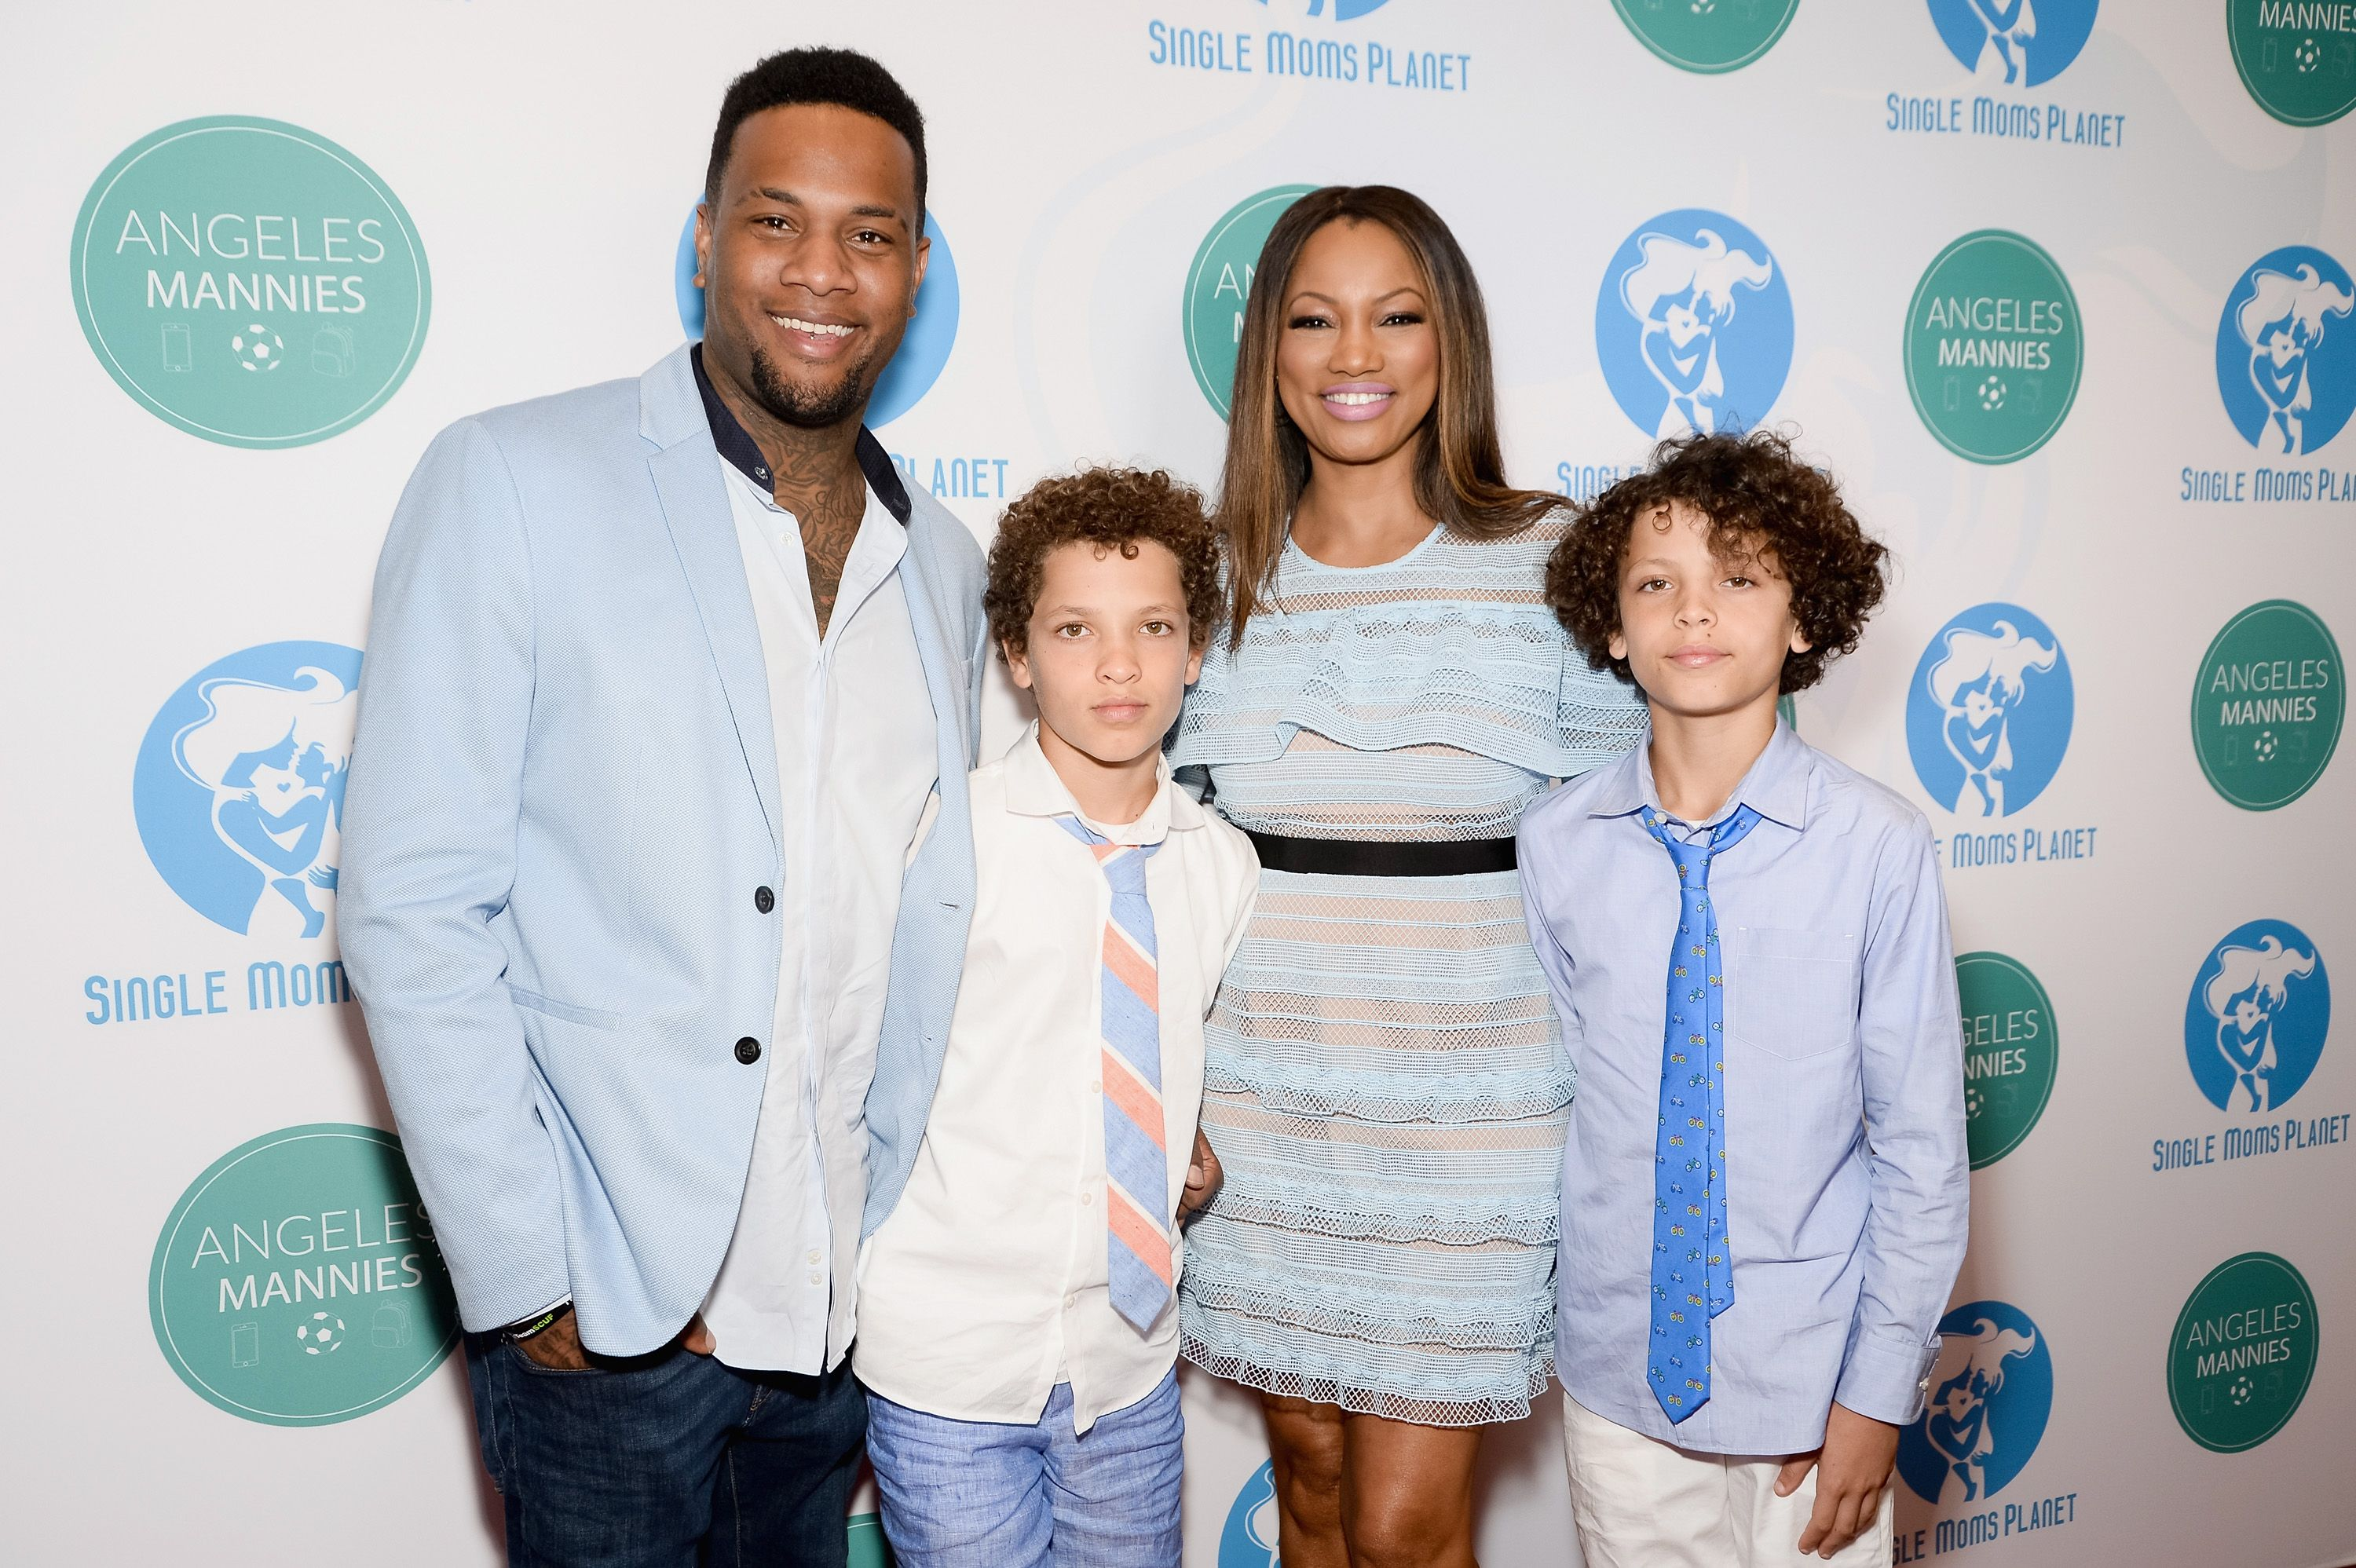 Giselle Beauvais and sons Oliver Saunders, Jaid Thomas Nilon and Jax Joseph Nilon at the Single Mom's Awards on May 11, 2017 in Beverly Hills. | Photo: Getty Images